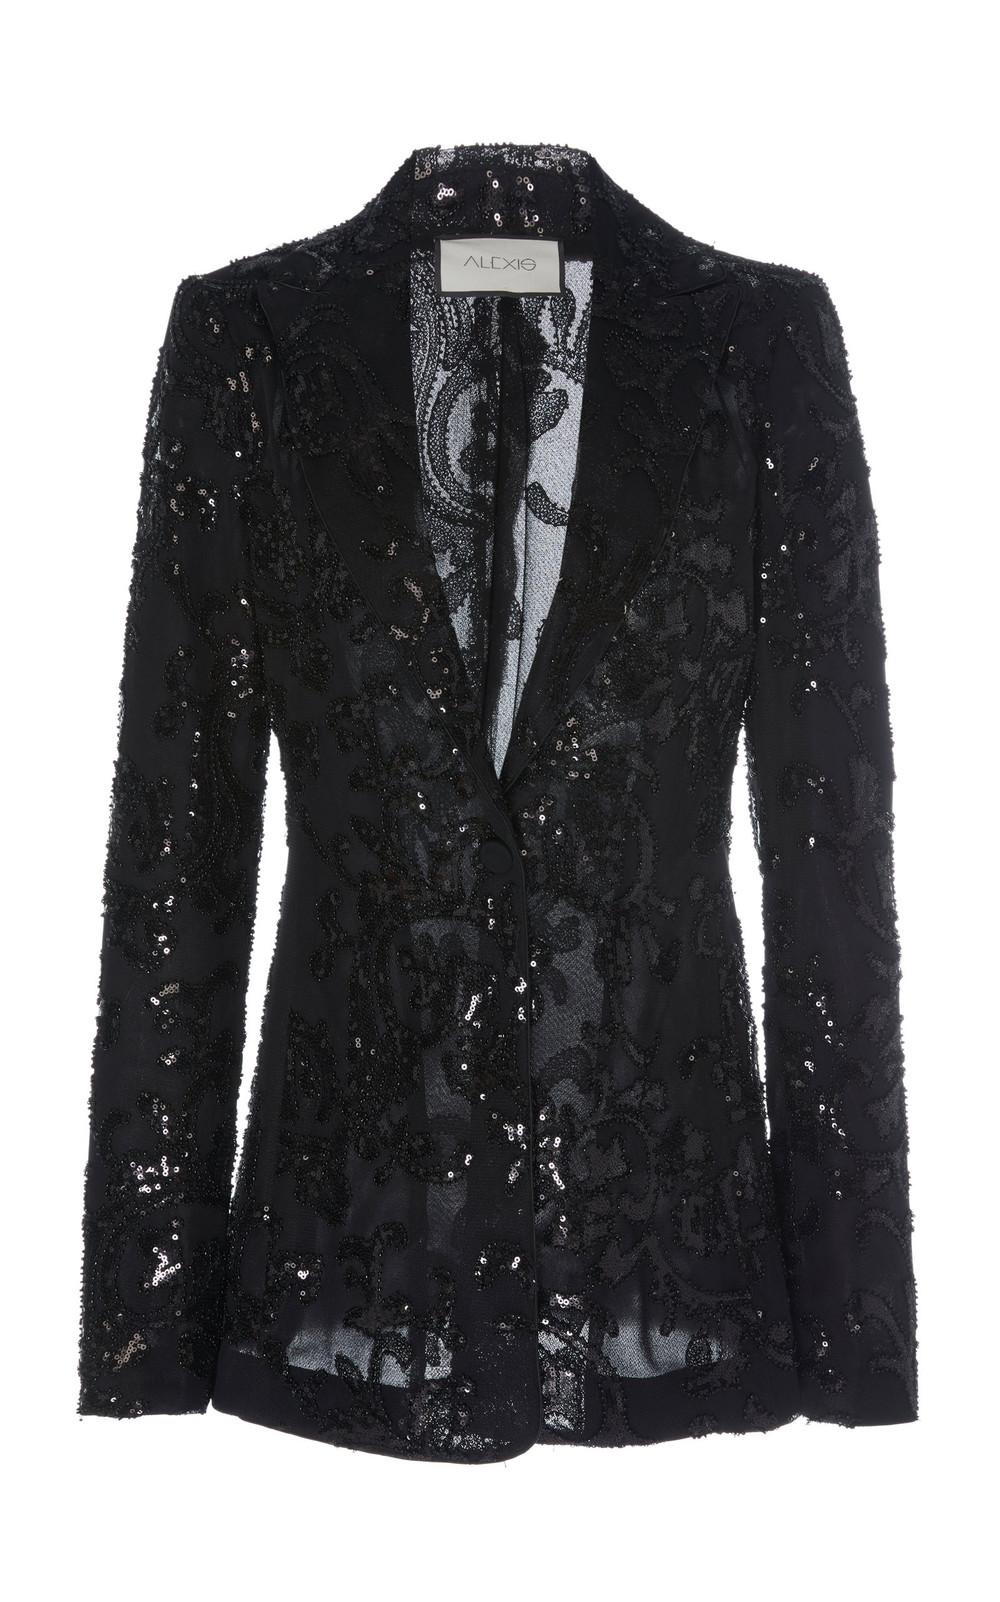 Alexis Firdas Sequin Embroidered Tulle Blazer Size: XS in black